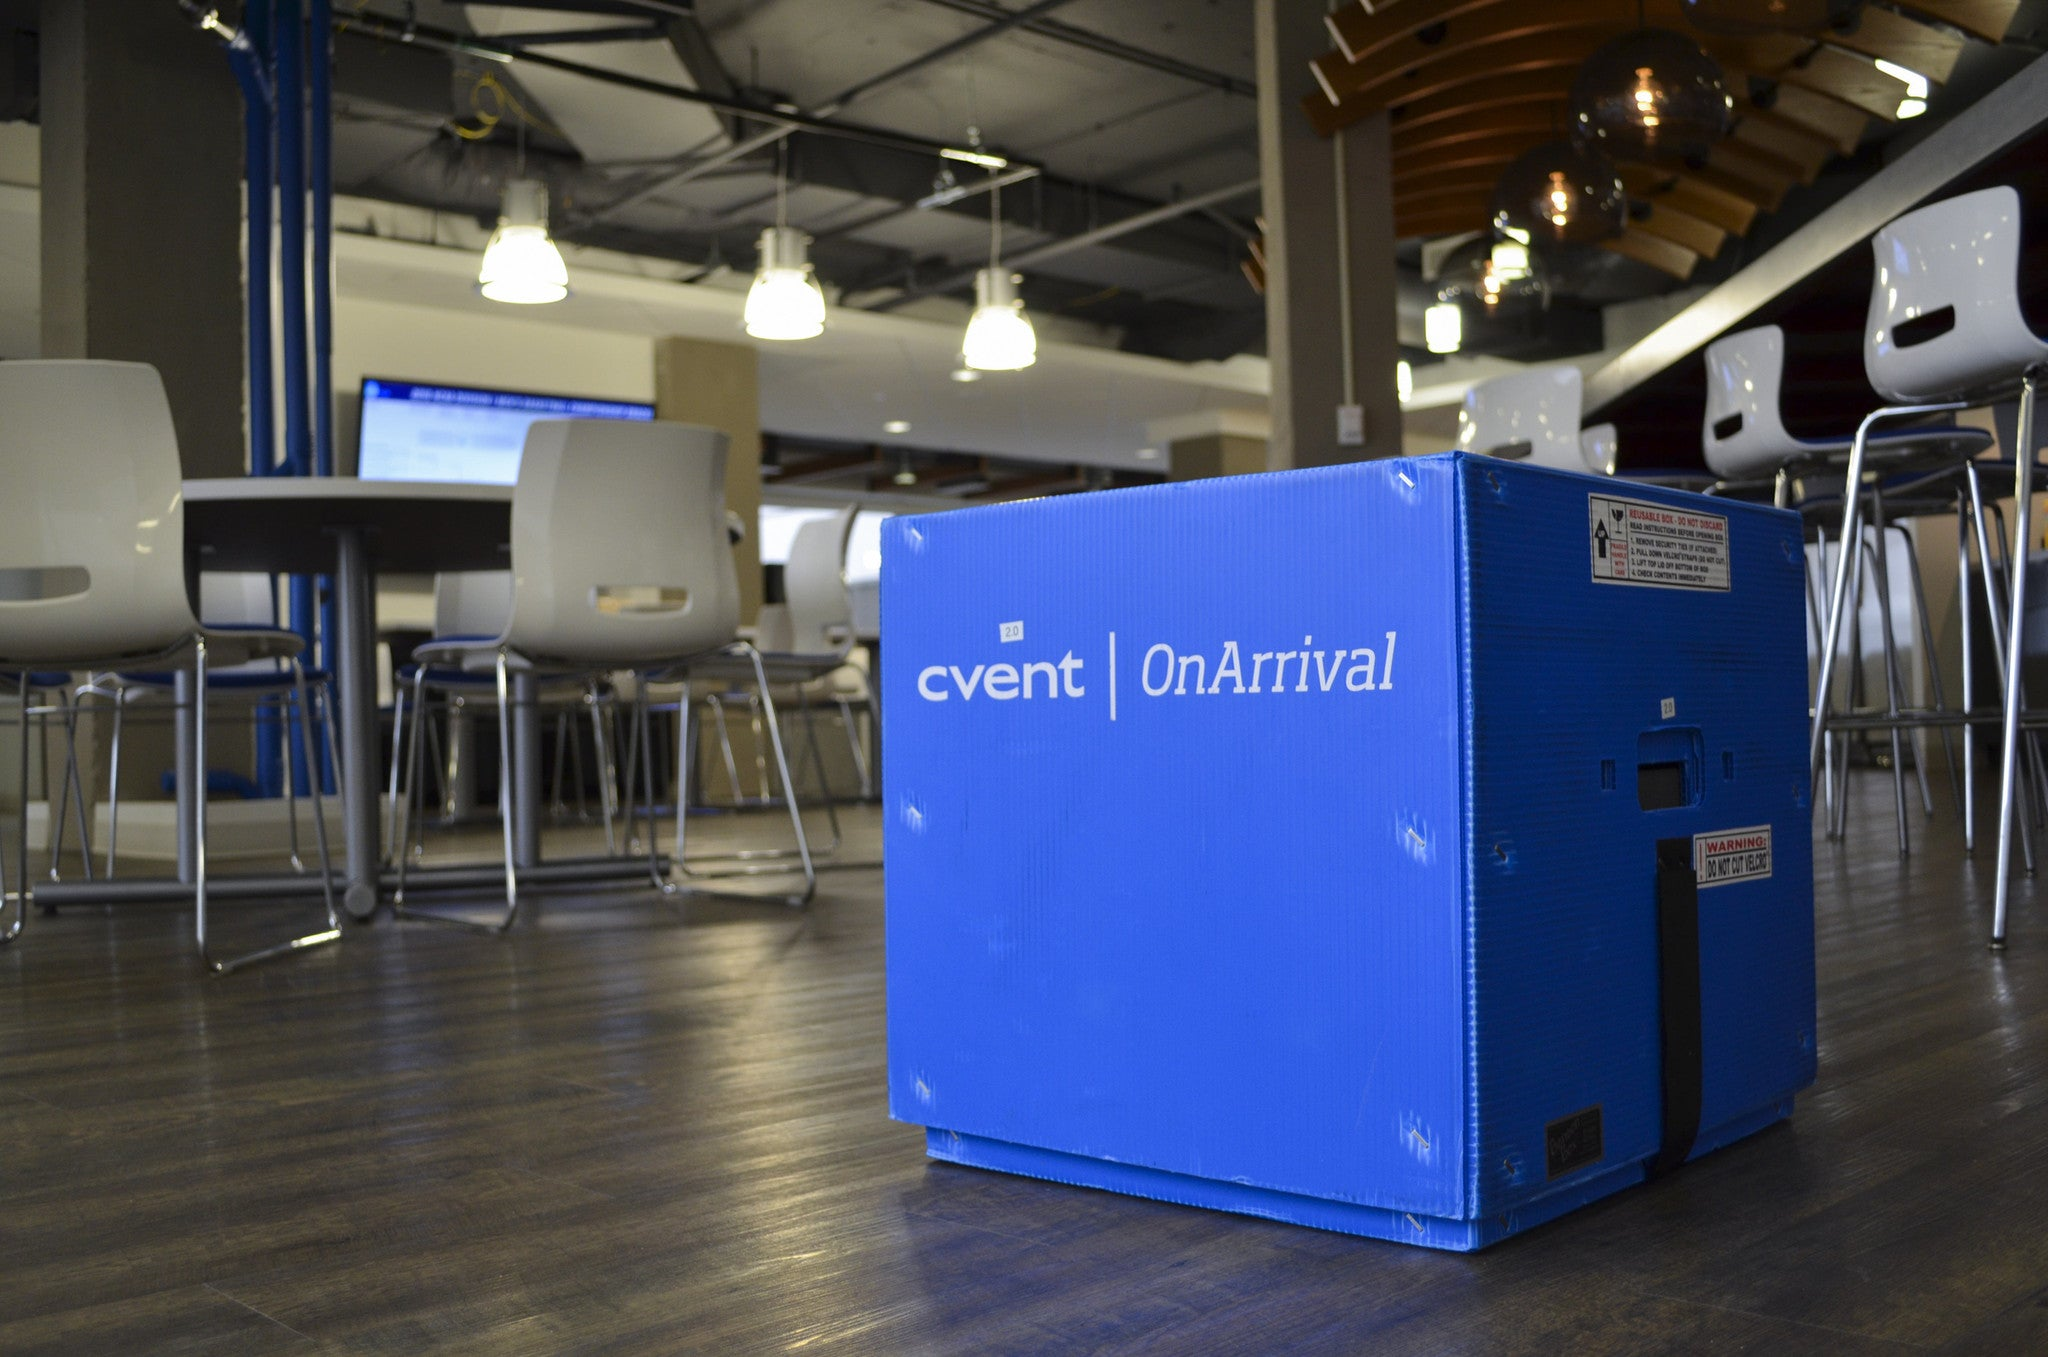 europe international event in a box purchase cvent onarrival